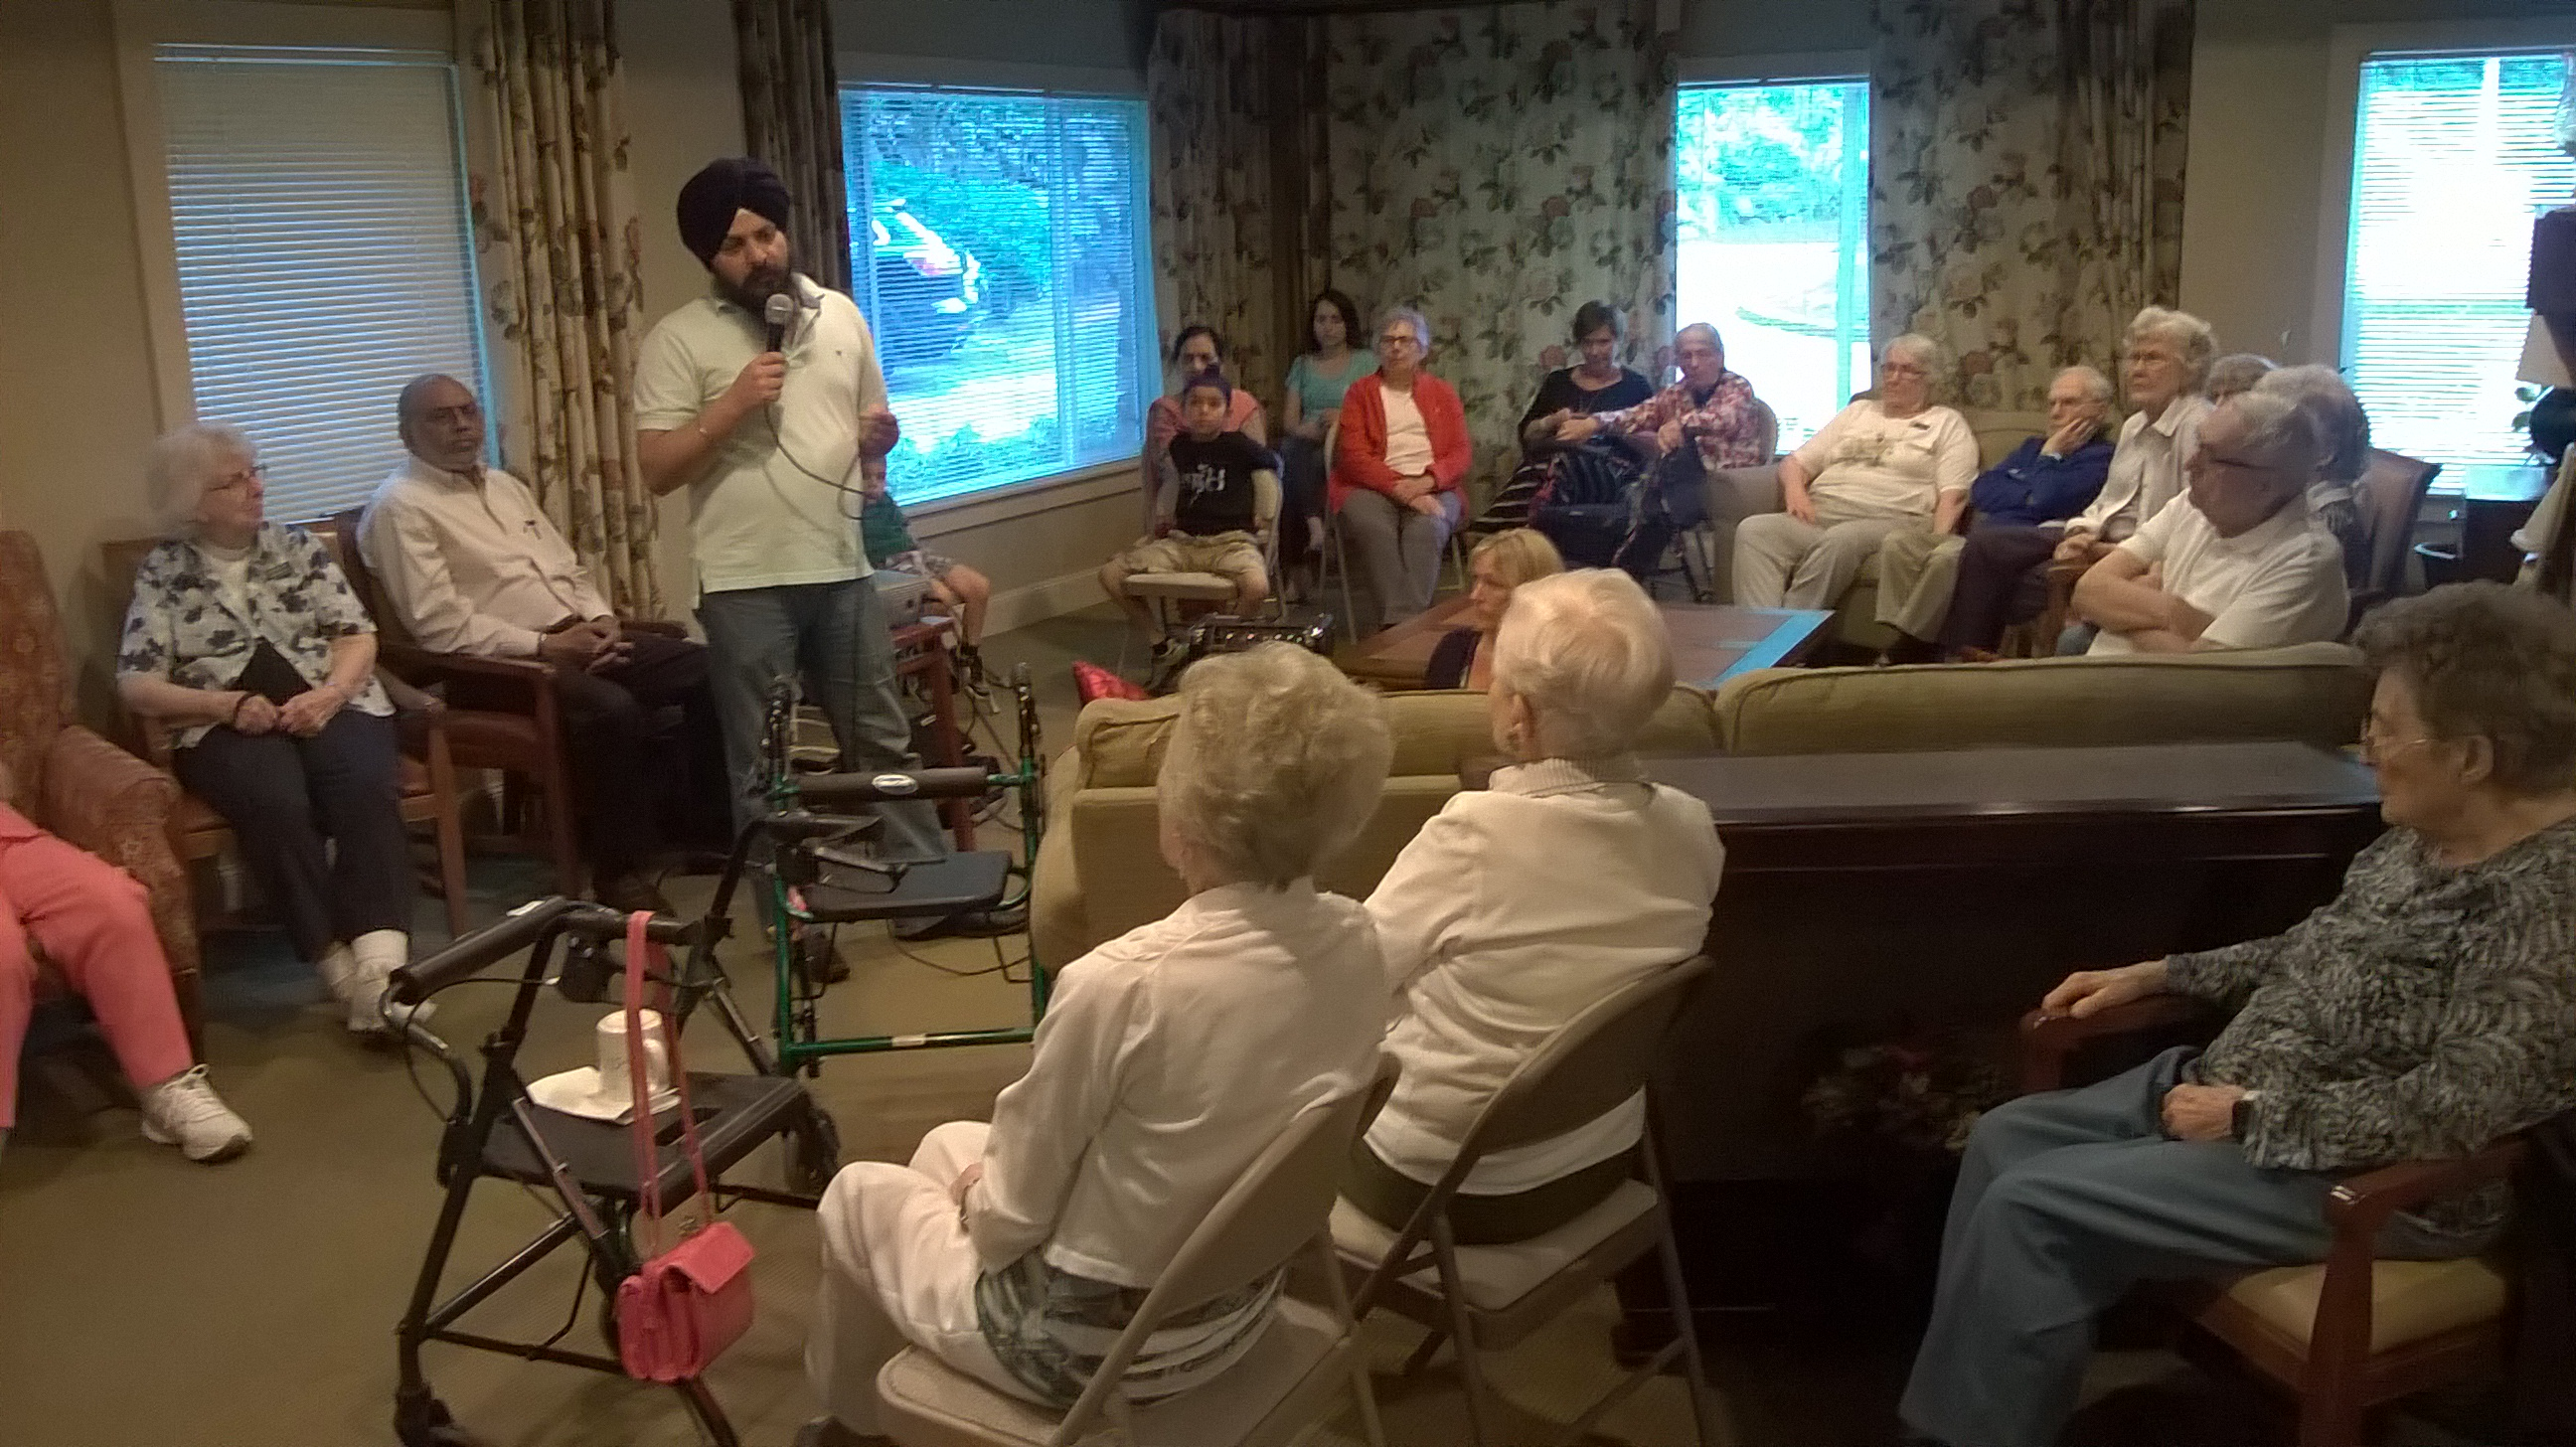 Ish From The Sikh Center Leading A Service At The Senior Home